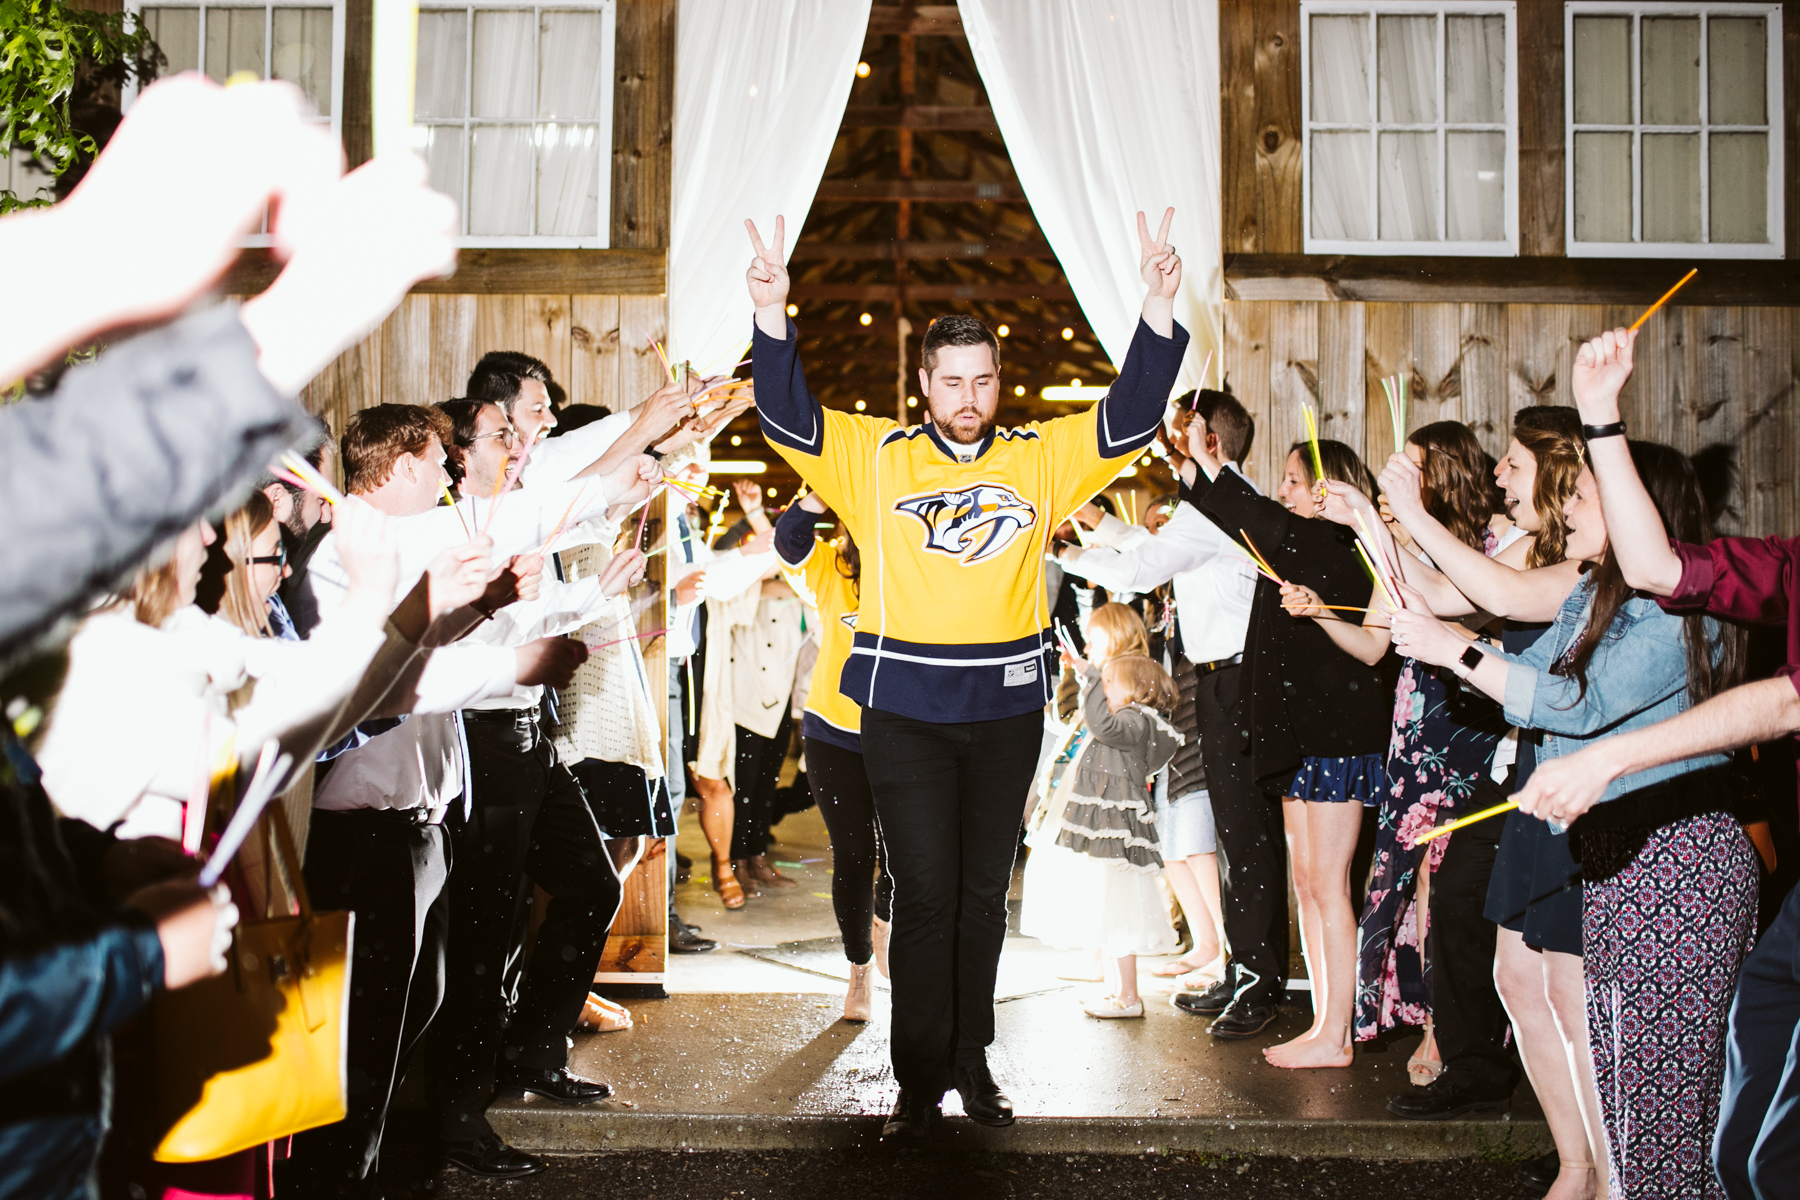 A Nashville predators themed Glow stick exit after a rustic wedding at Barn in the Bend in Nashville, Tennessee